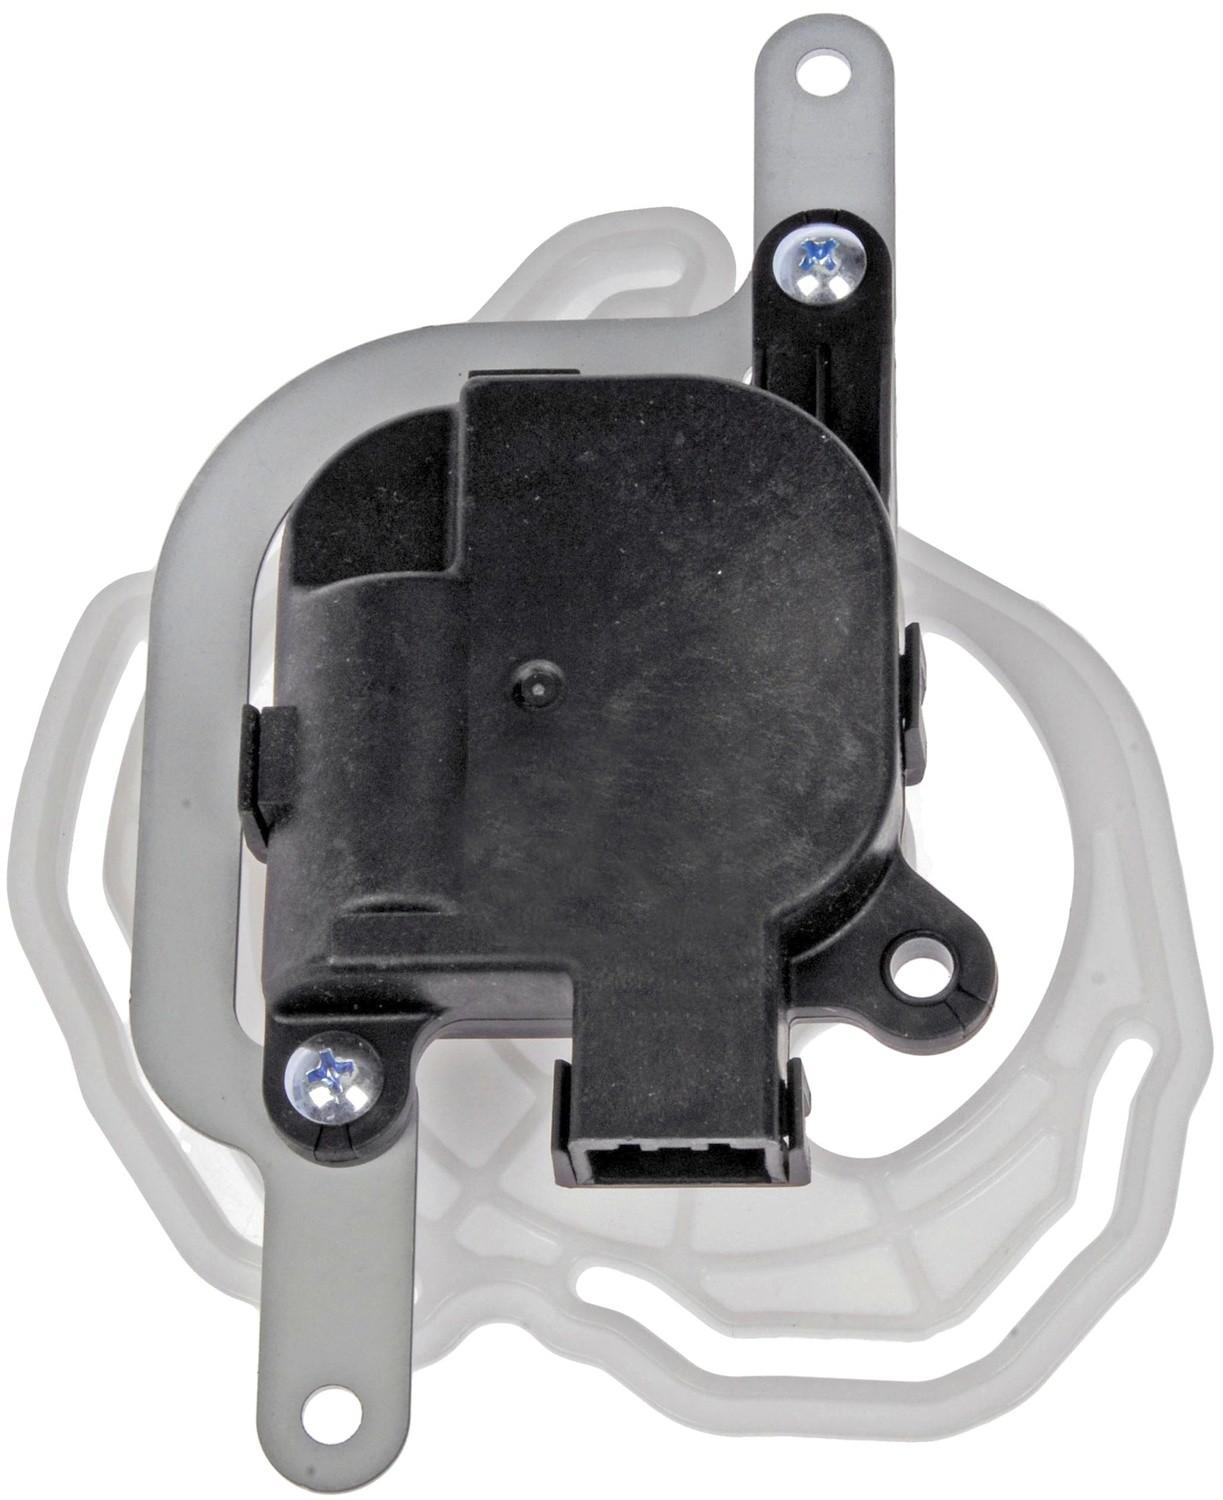 DORMAN OE SOLUTIONS - HVAC Heater Blend Door Actuator - DRE 604-311